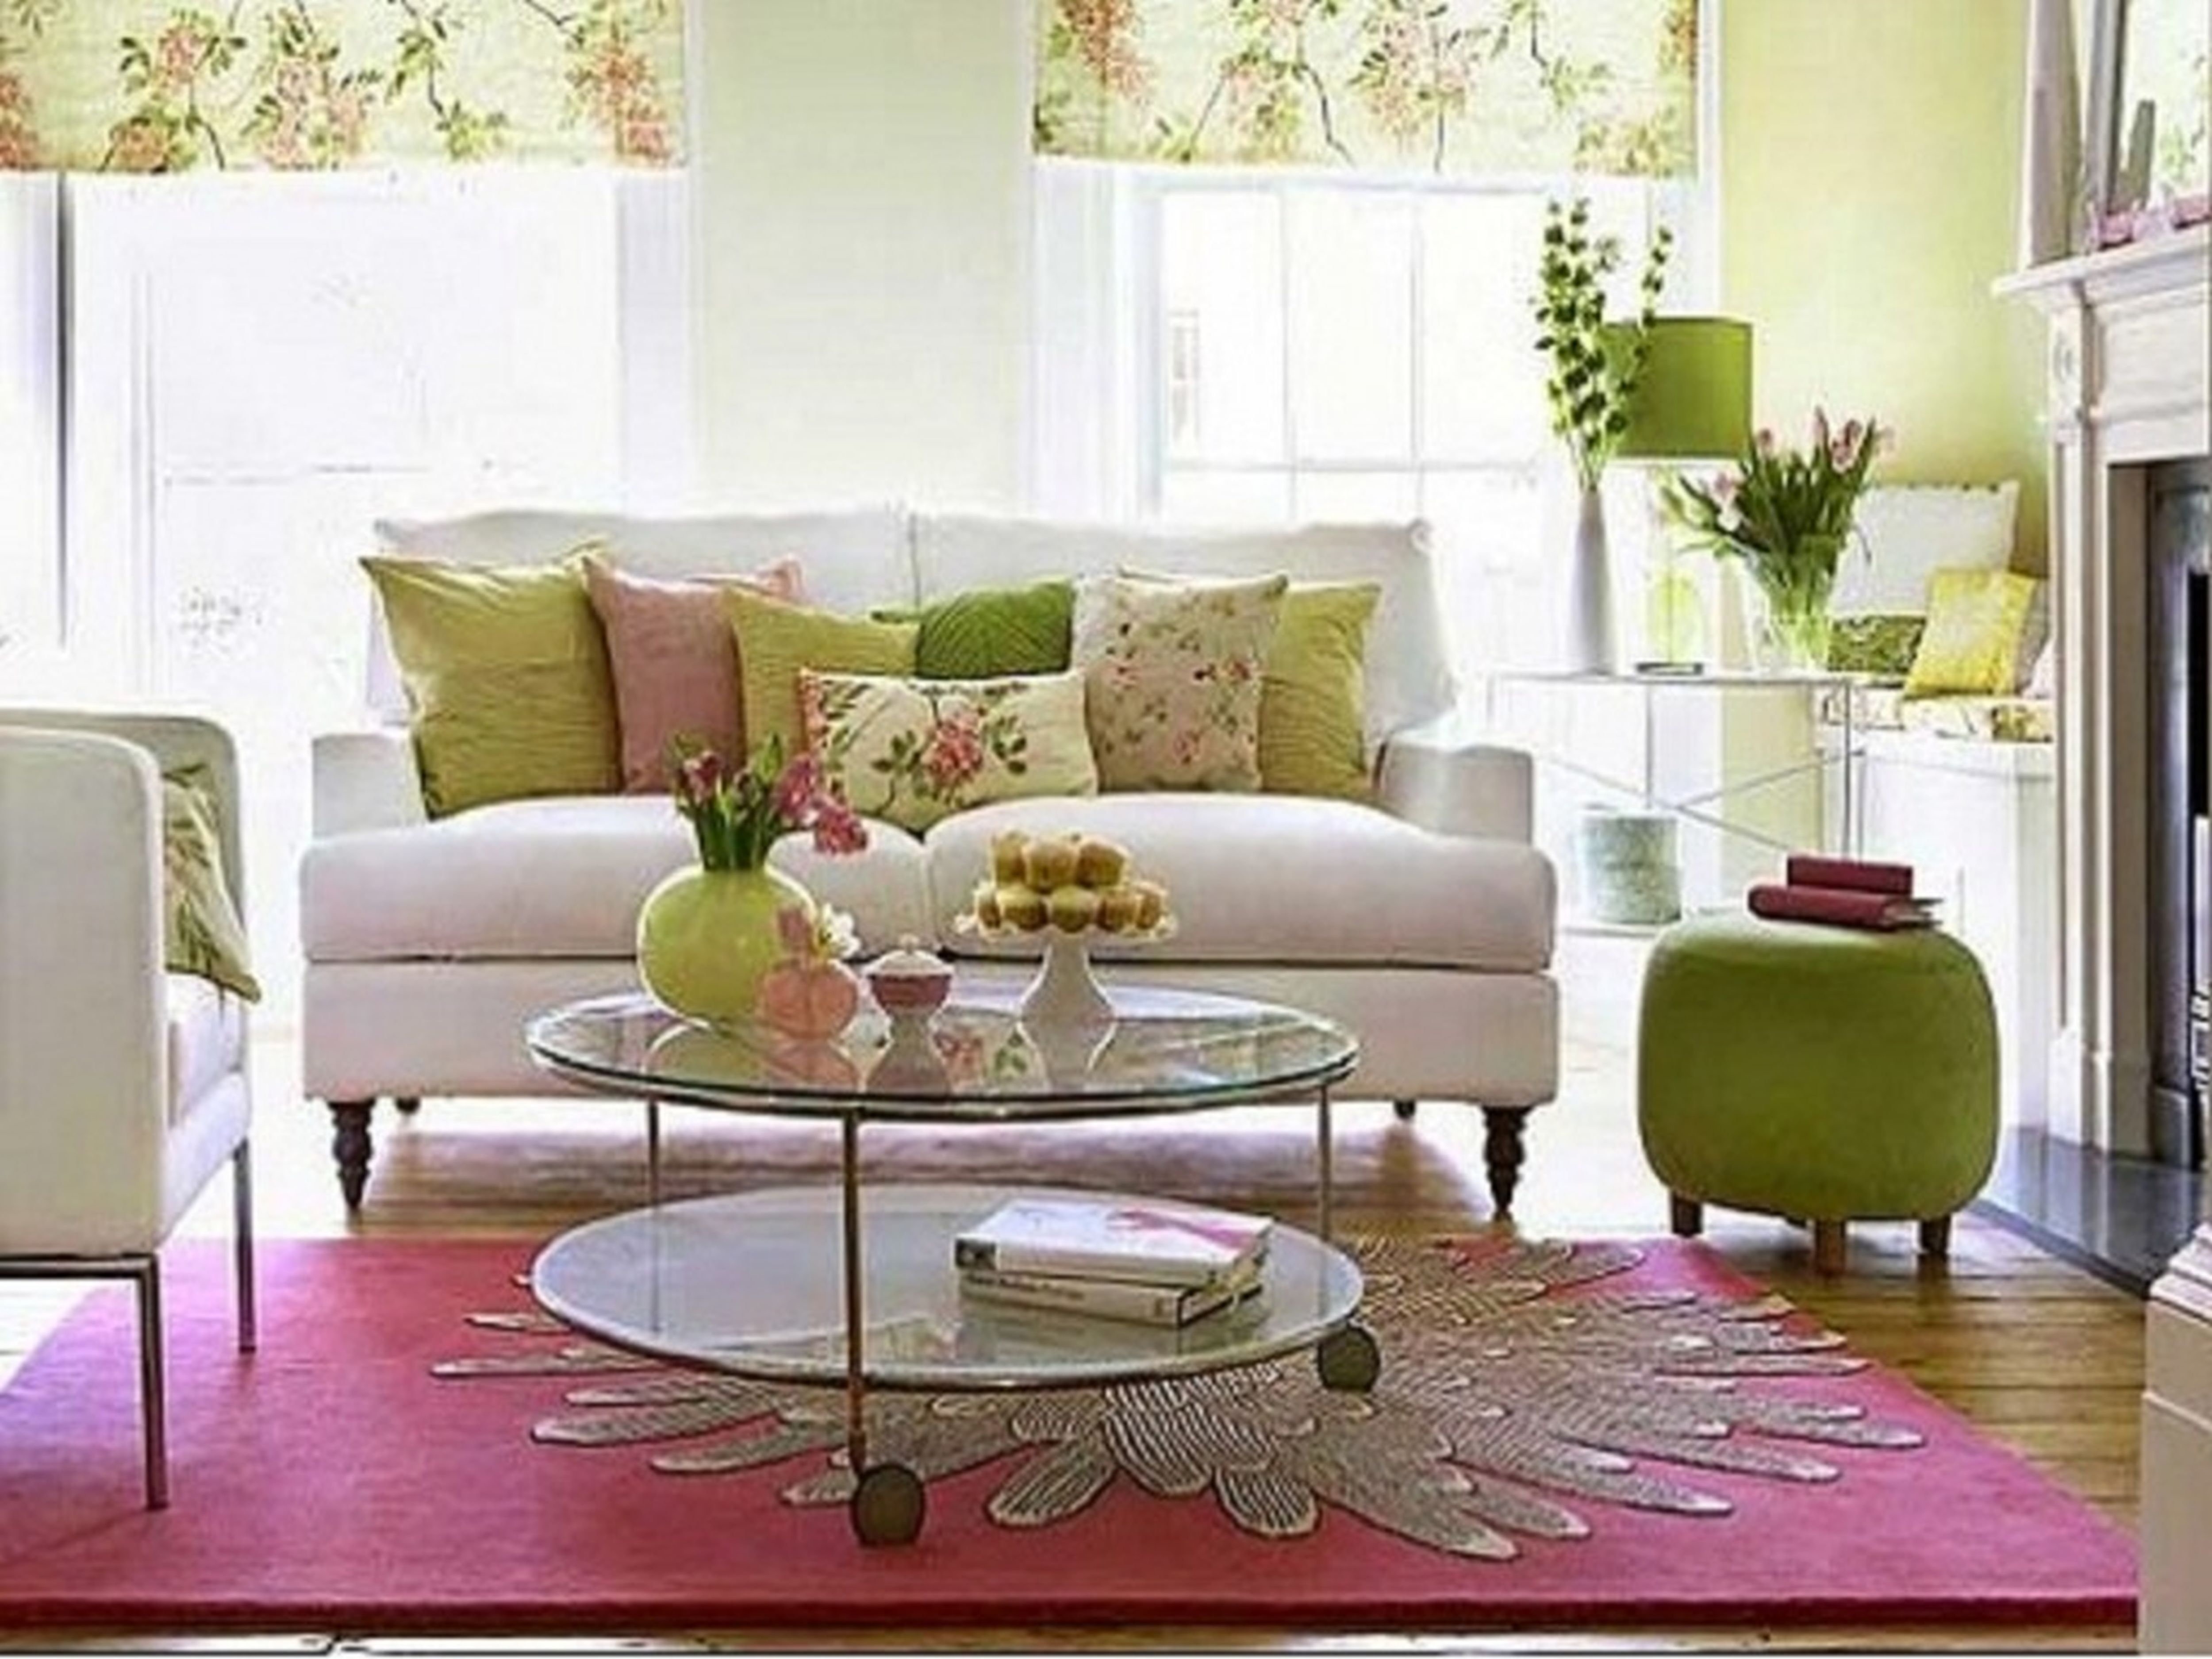 Home Decorative Design 30 Cozy Home Decor Ideas For Your Home